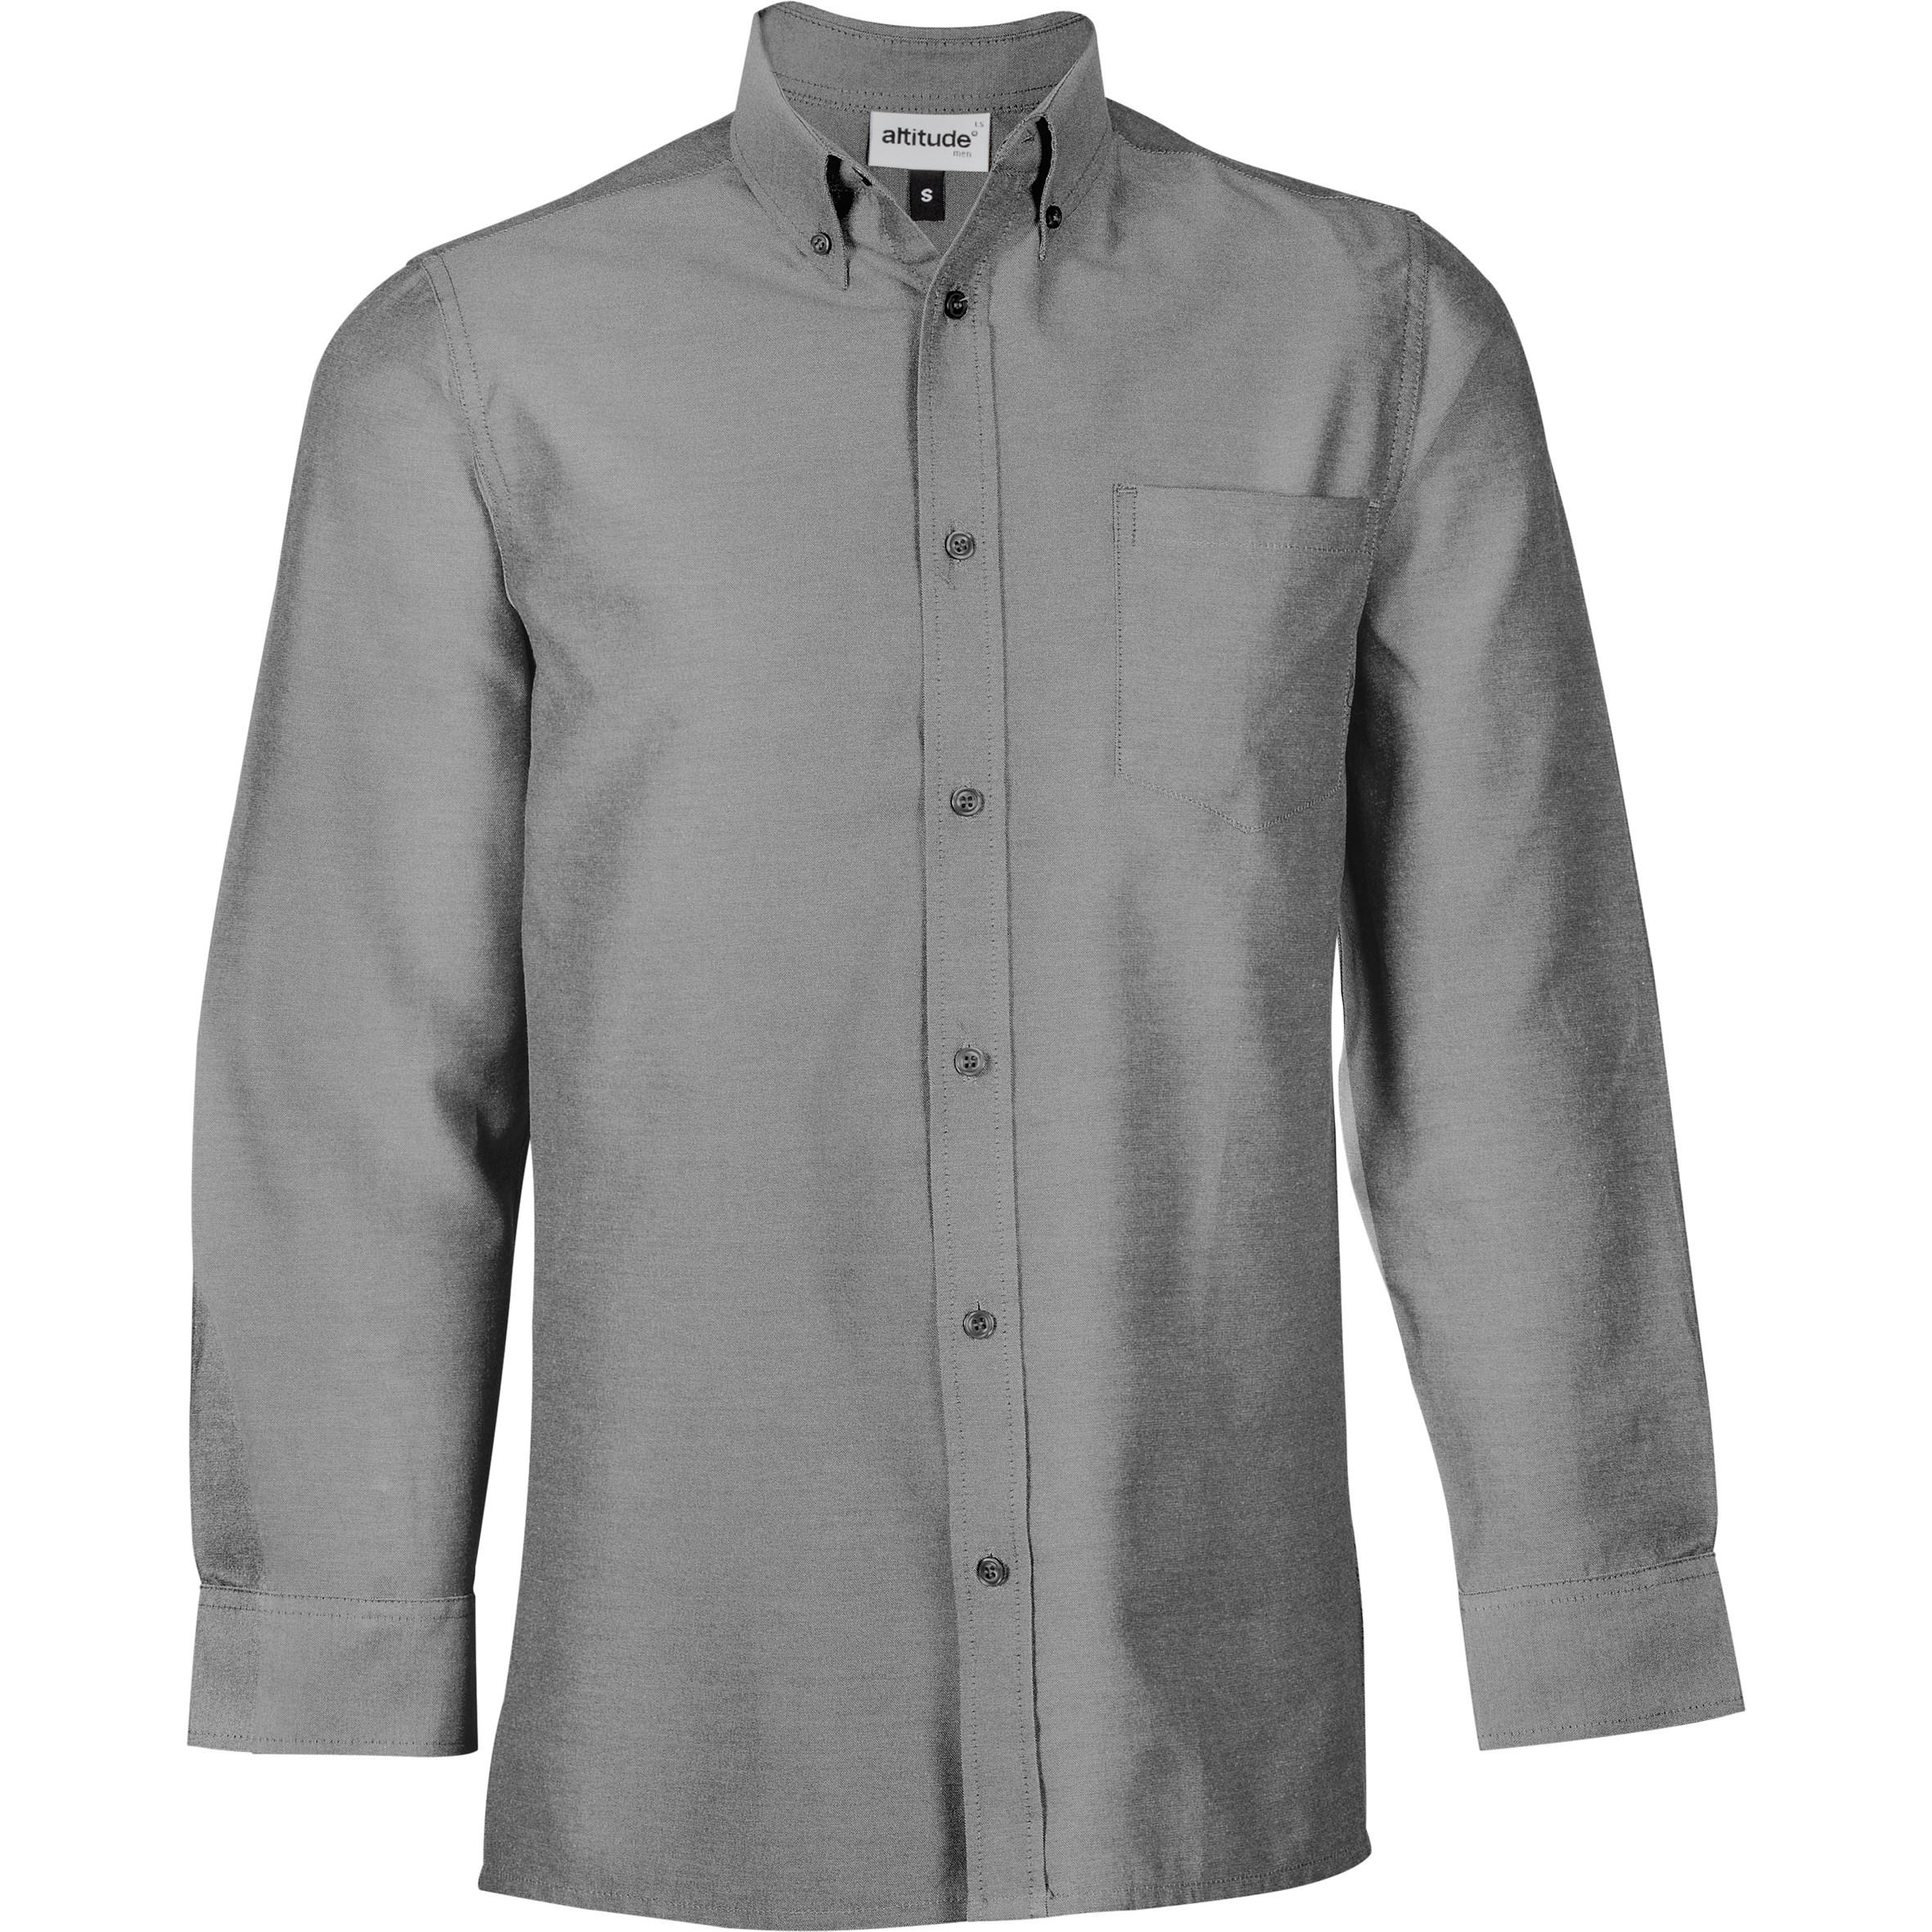 Mens Long Sleeve Oxford Shirt - Charcoal Only